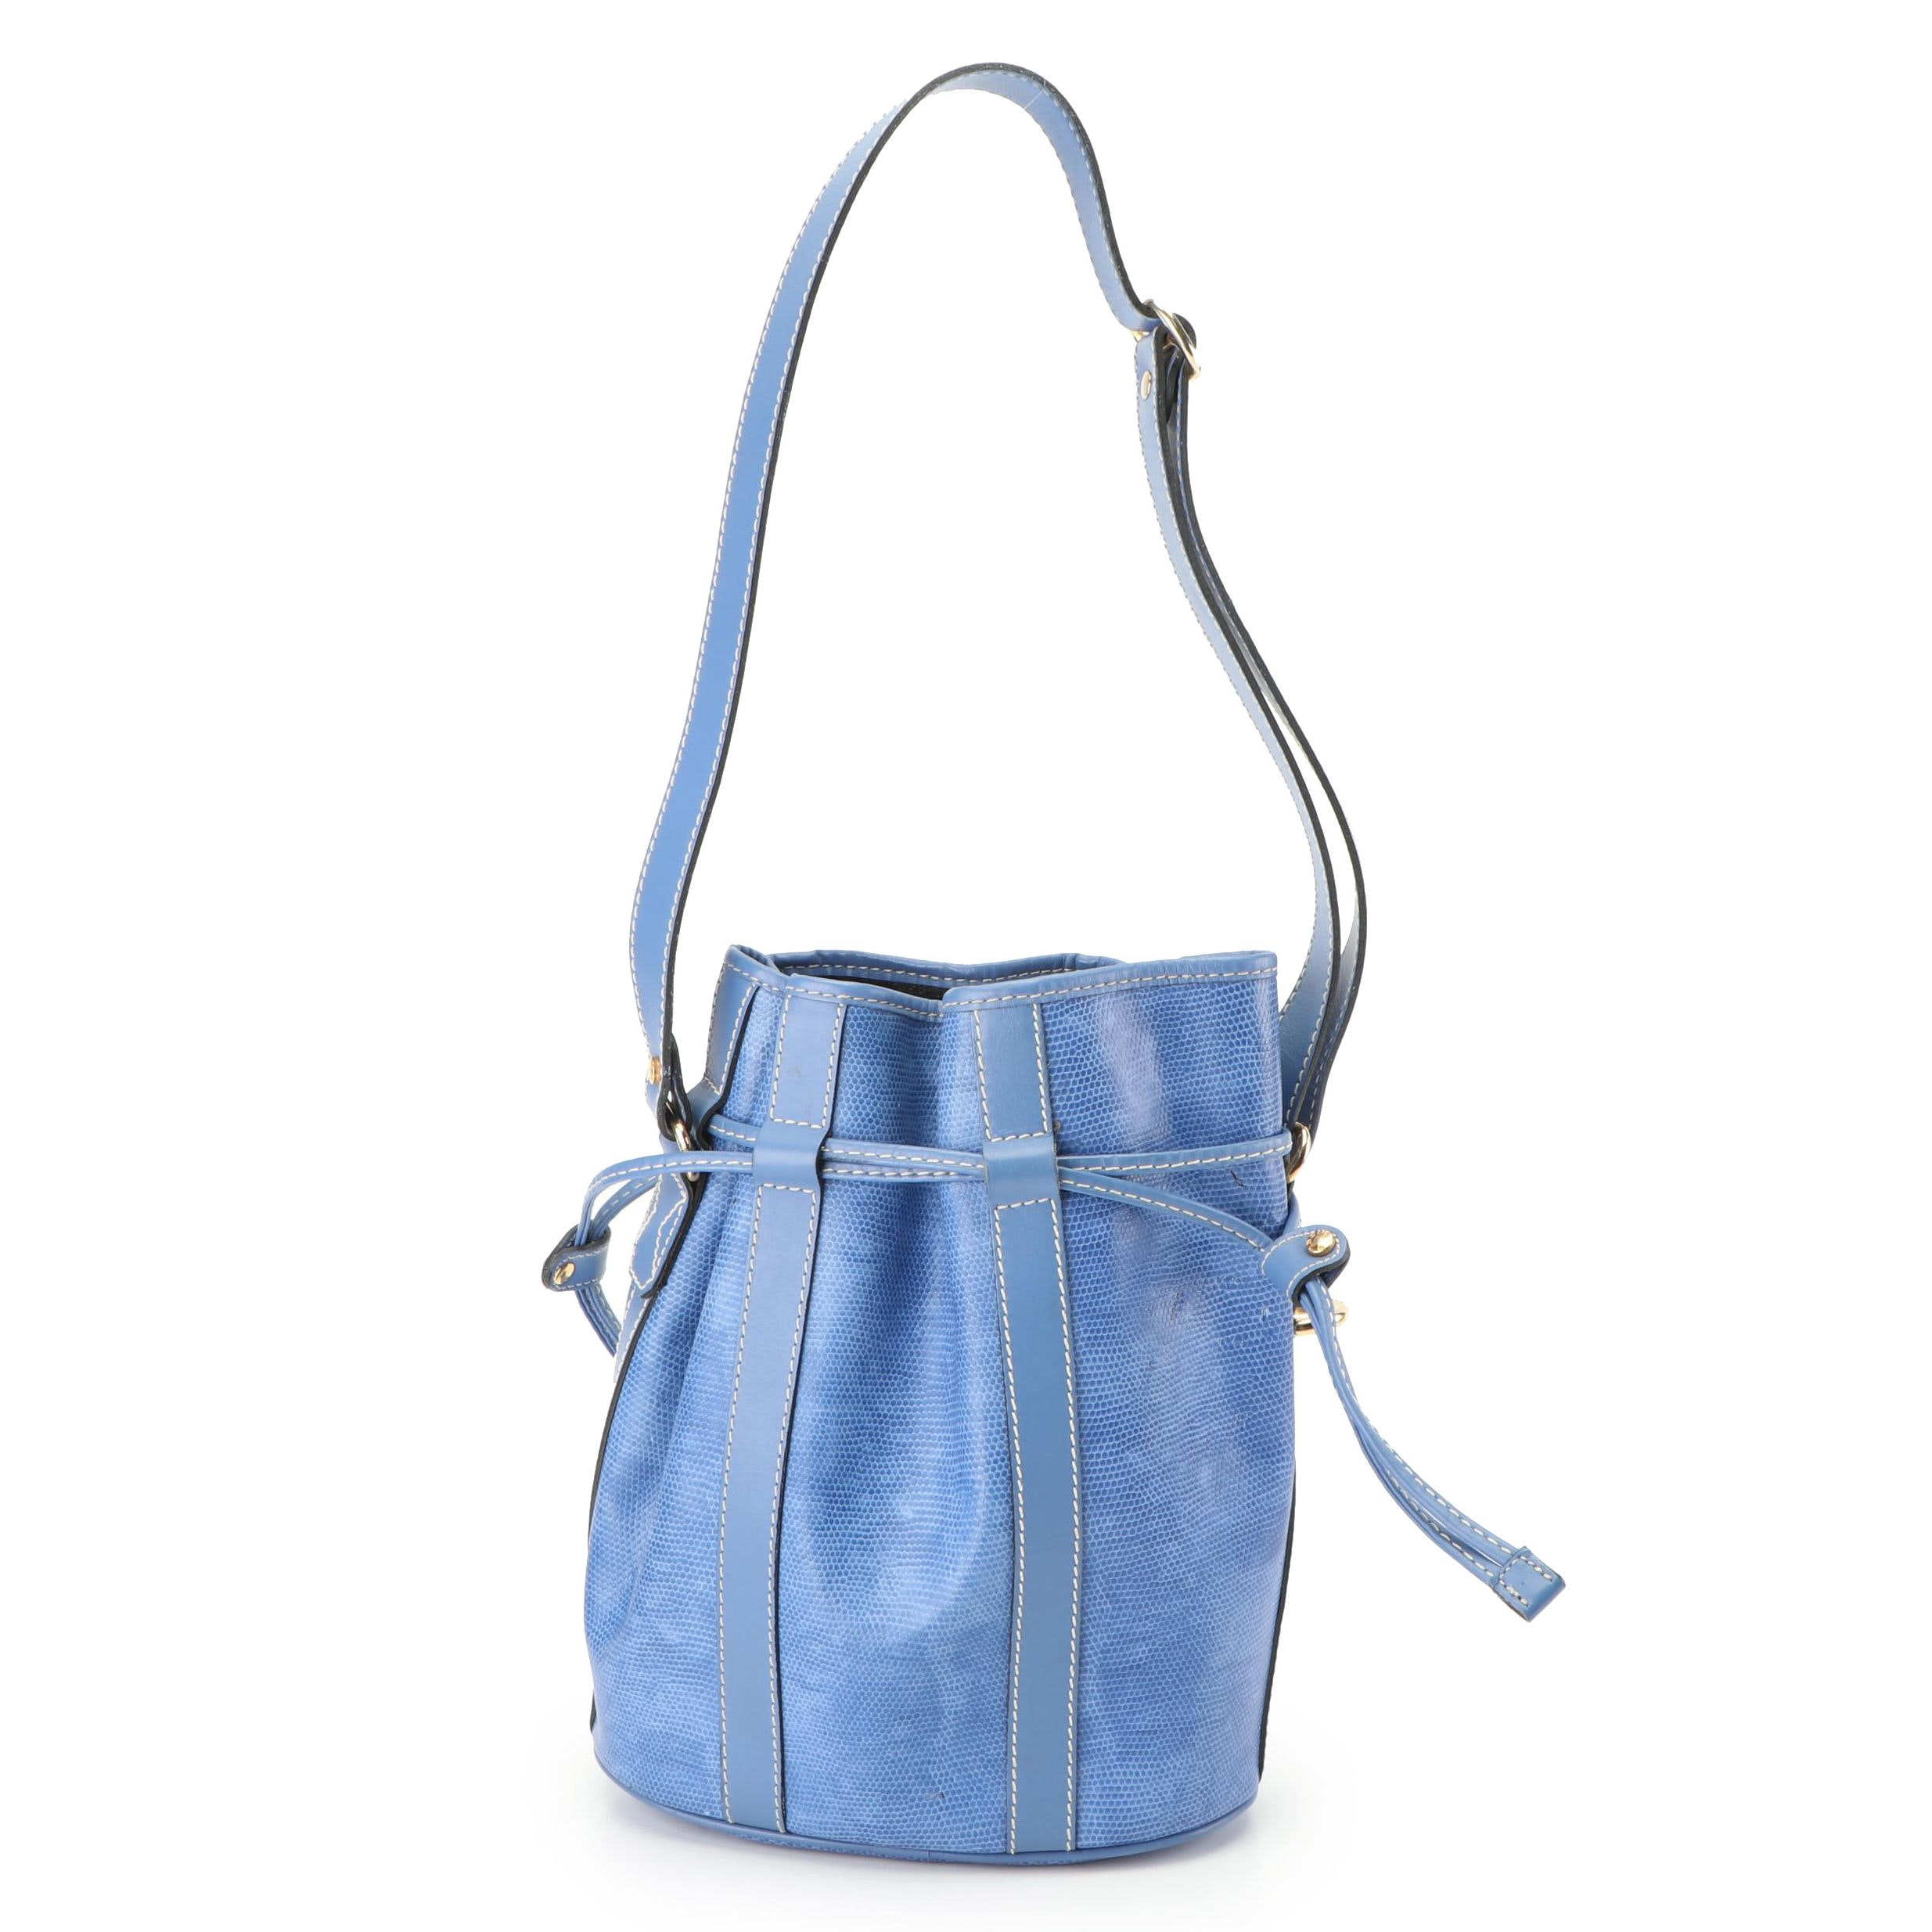 Lancel Lizard Embossed Blue Leather Bucket Bag